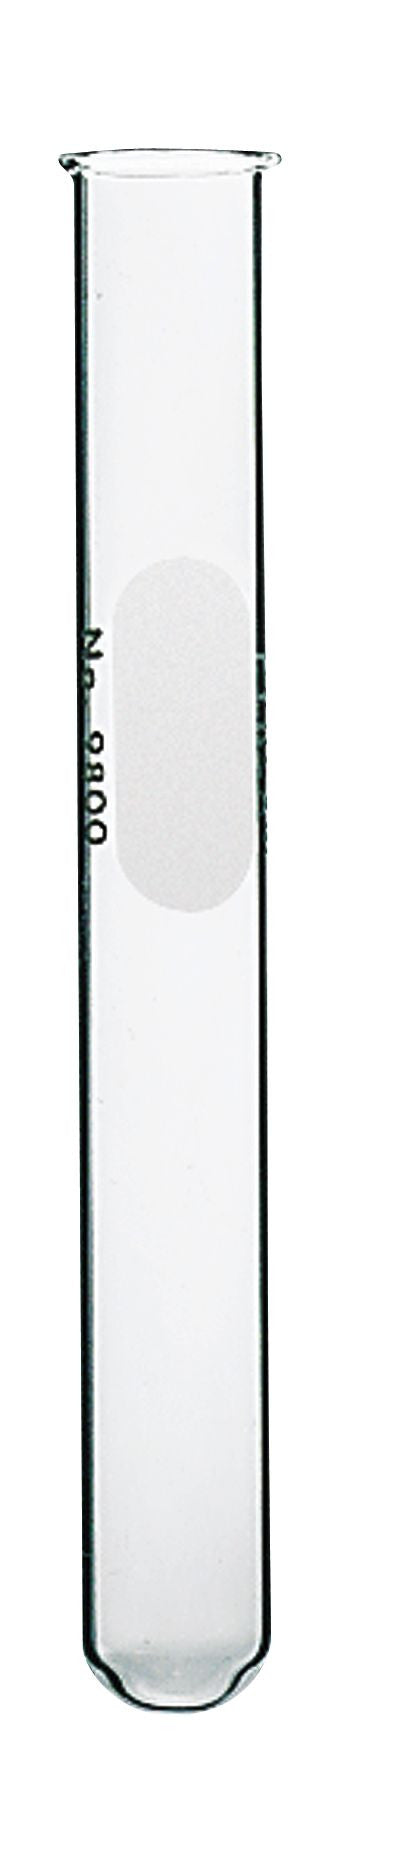 PYREX® 70mL Test Tubes, 25x200mm ~ Glass 6/pk - The Science Shop